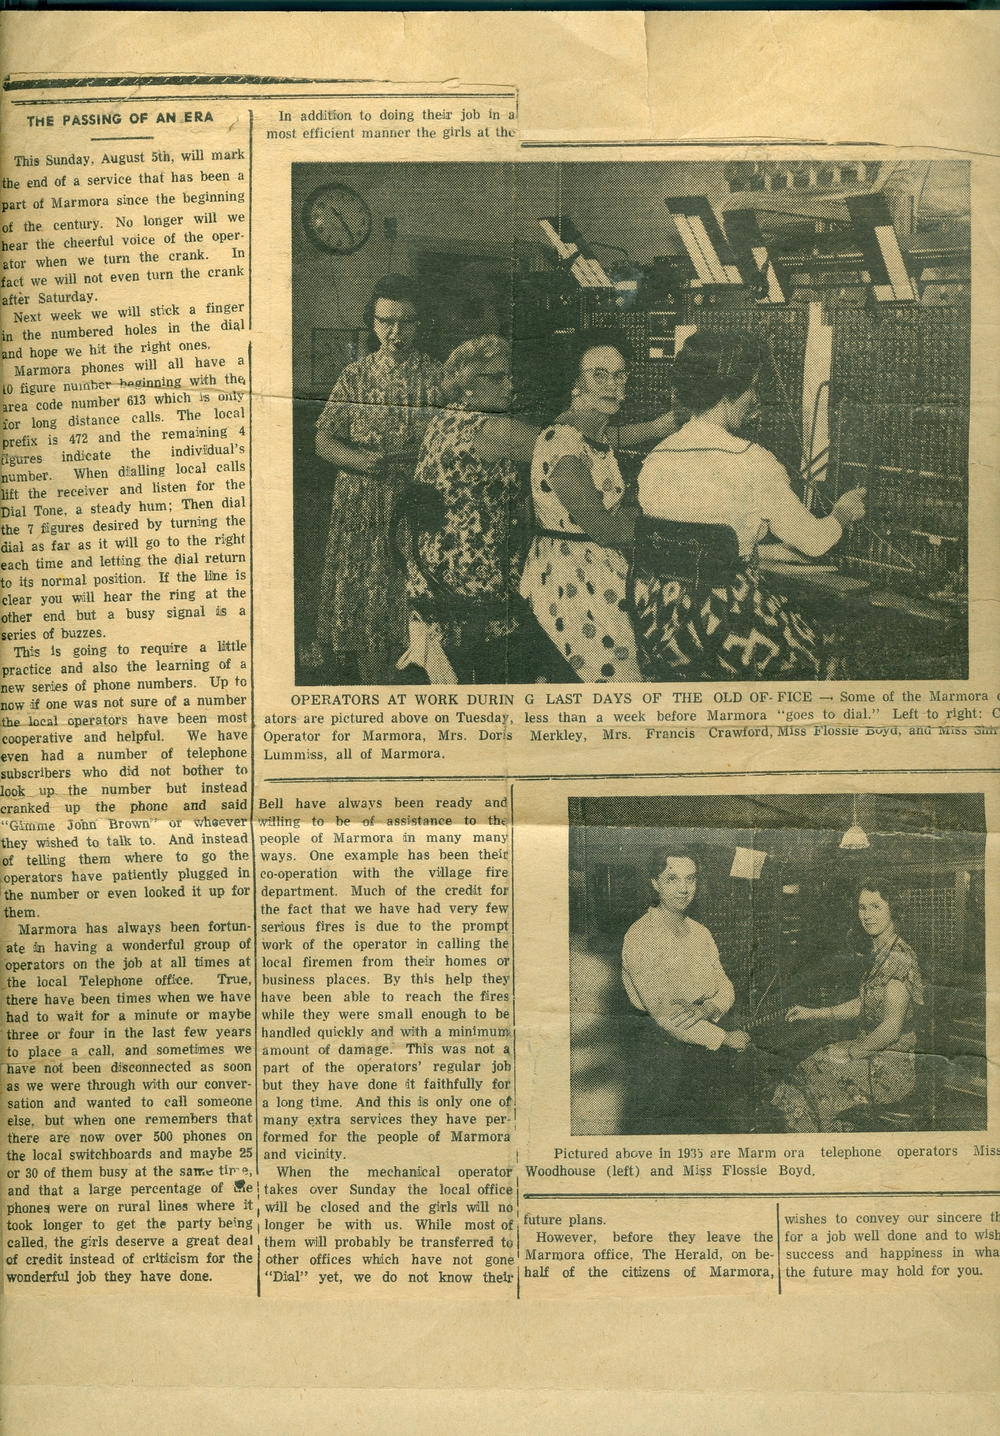 Pictured above - Switchboard operators Doris Merkley, Mrs. Francis Crawford, Miss Lummiss, Miss Woodhouse, Flossie Boyd  Three Foley girls worked as operators in Marmora. Maurice Foley and Sarah Shannon had four daughters - Mary, Laura, Theresa and Maurice Elizbeth. Laura Foley died at age 85, but the other three died of polio before the age of 24.